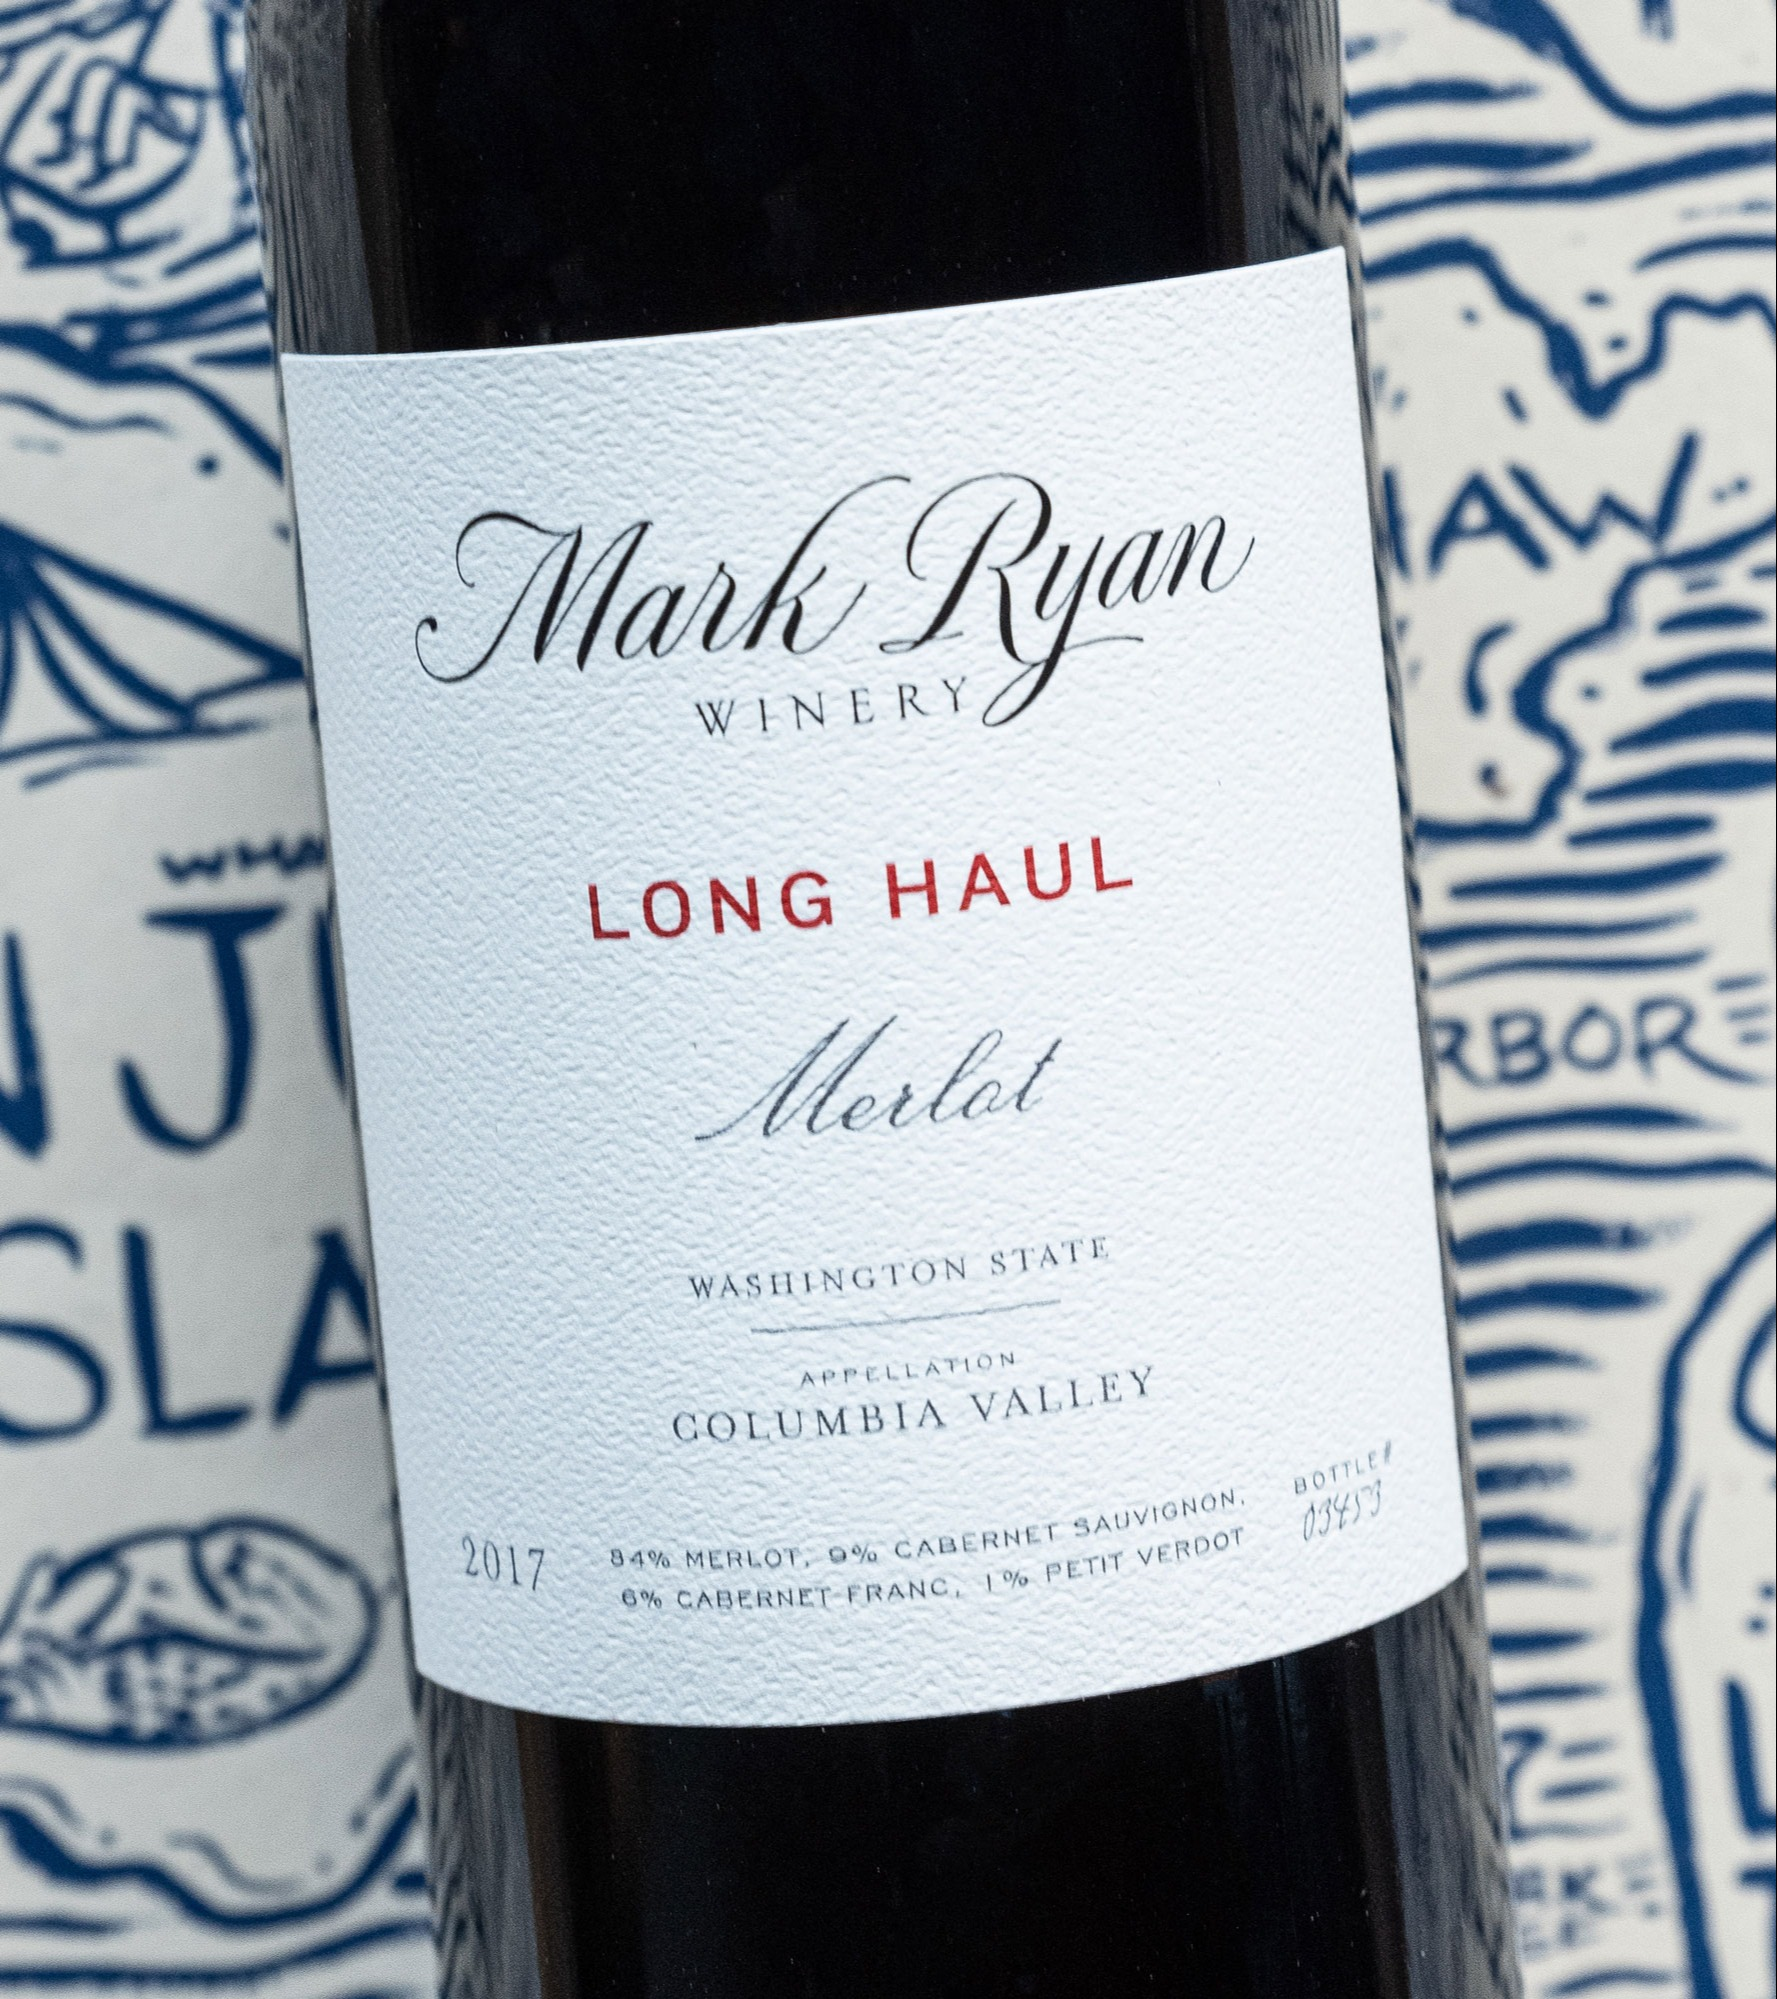 Bottle of Long Haul